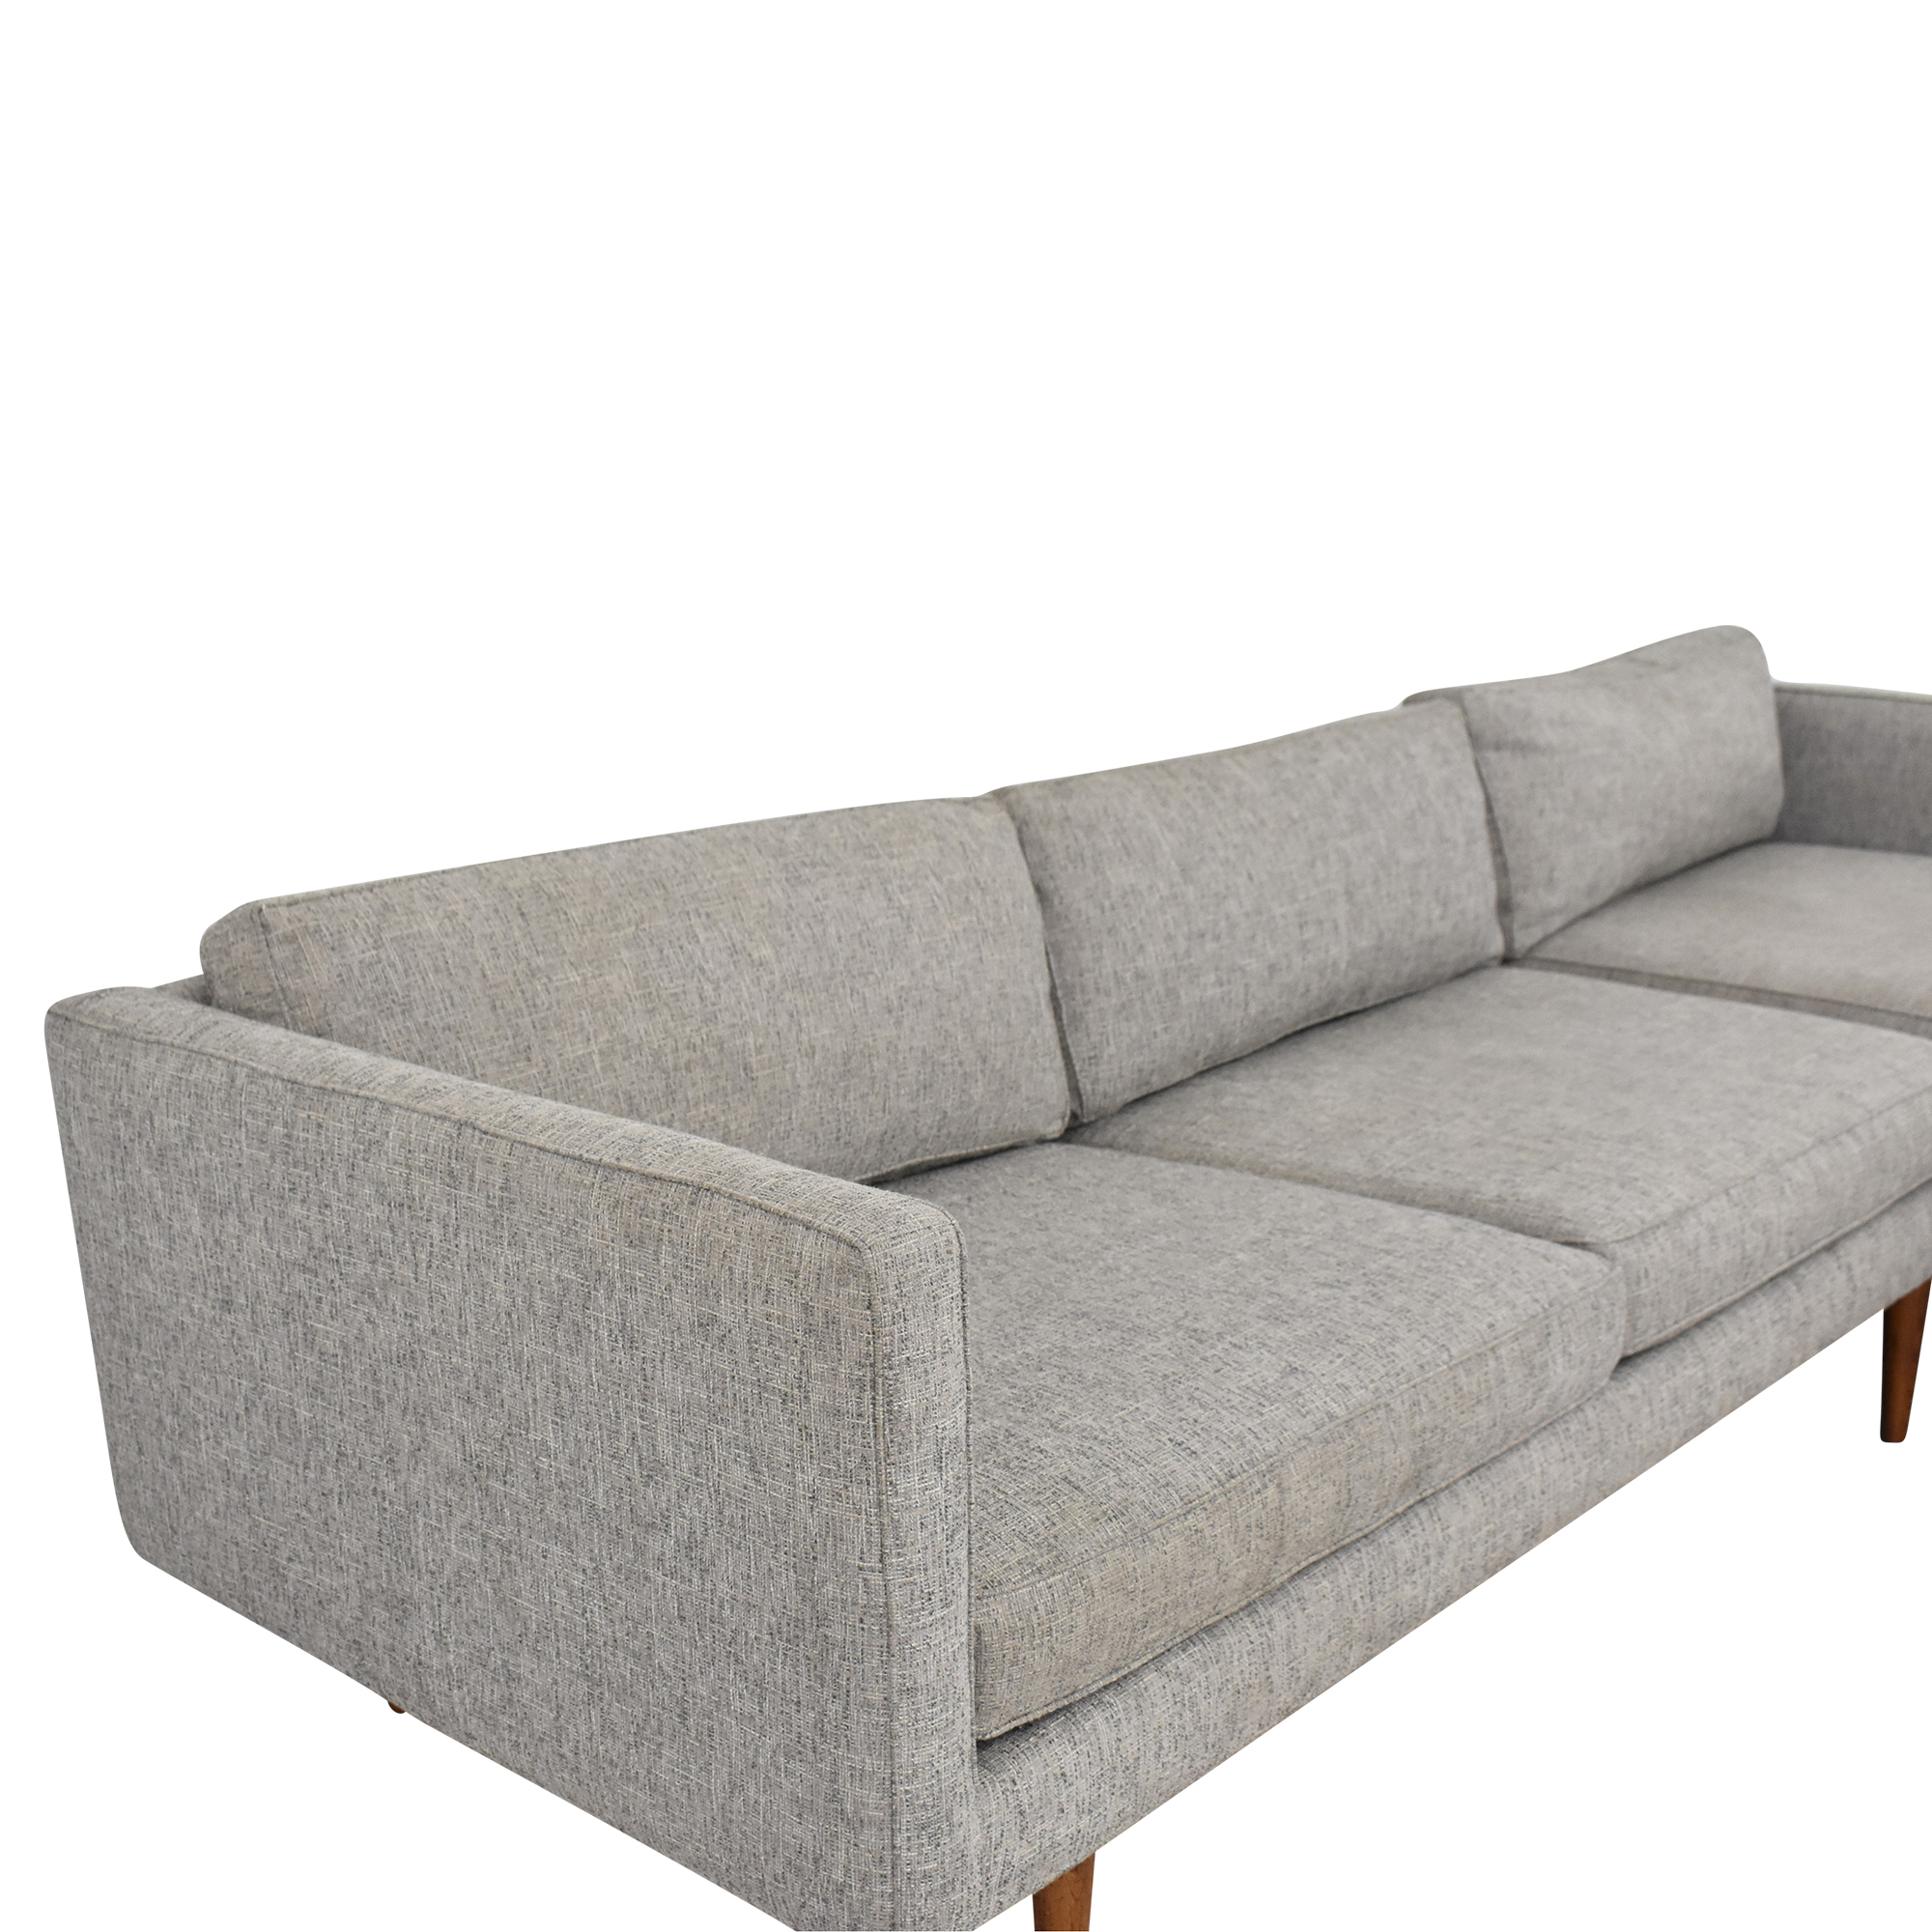 buy West Elm Sectional Sofa with Chaise West Elm